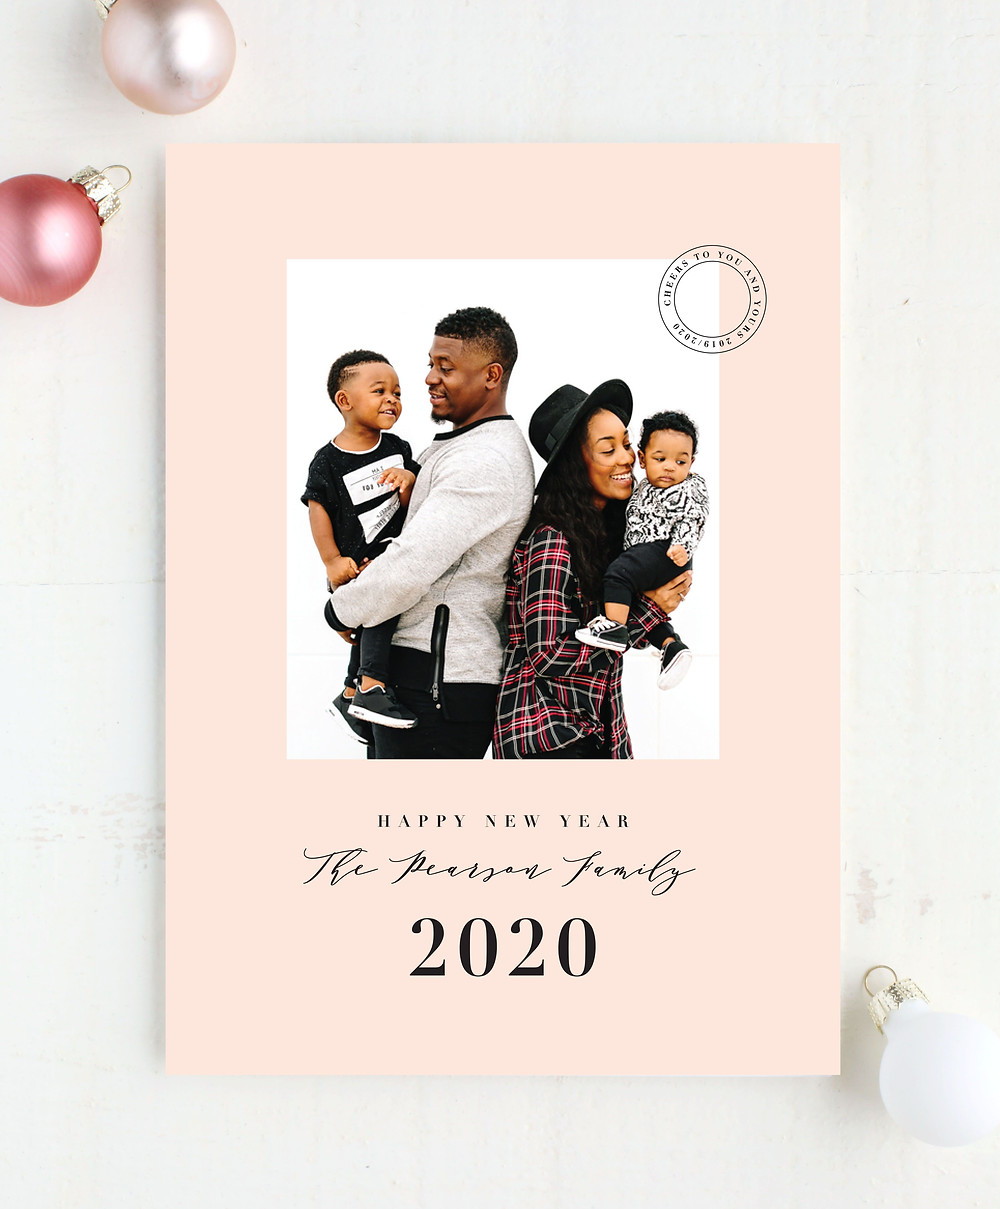 Christmas cards with family photos